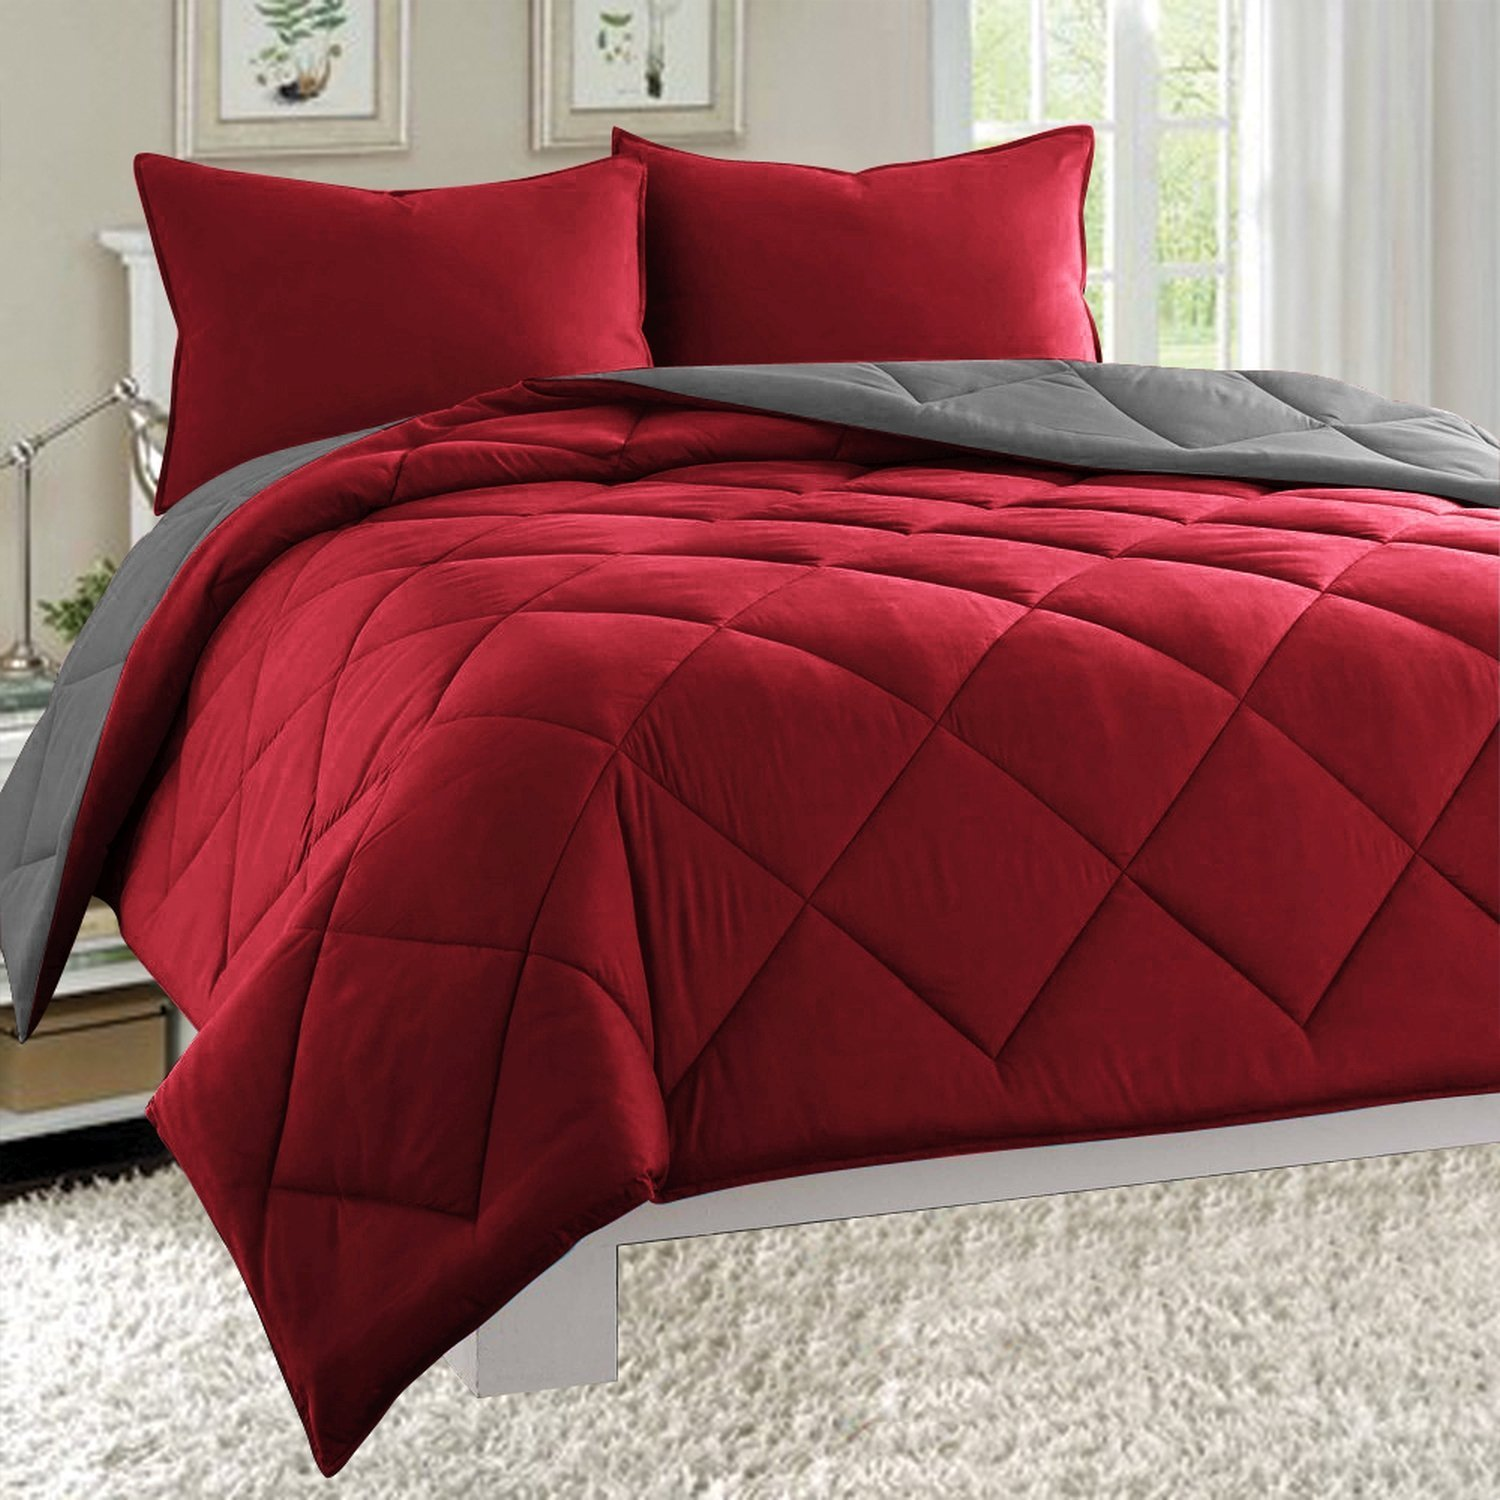 Reversible 2-Piece Comforter Set, Twin/Twin XL, Burgundy/Grey